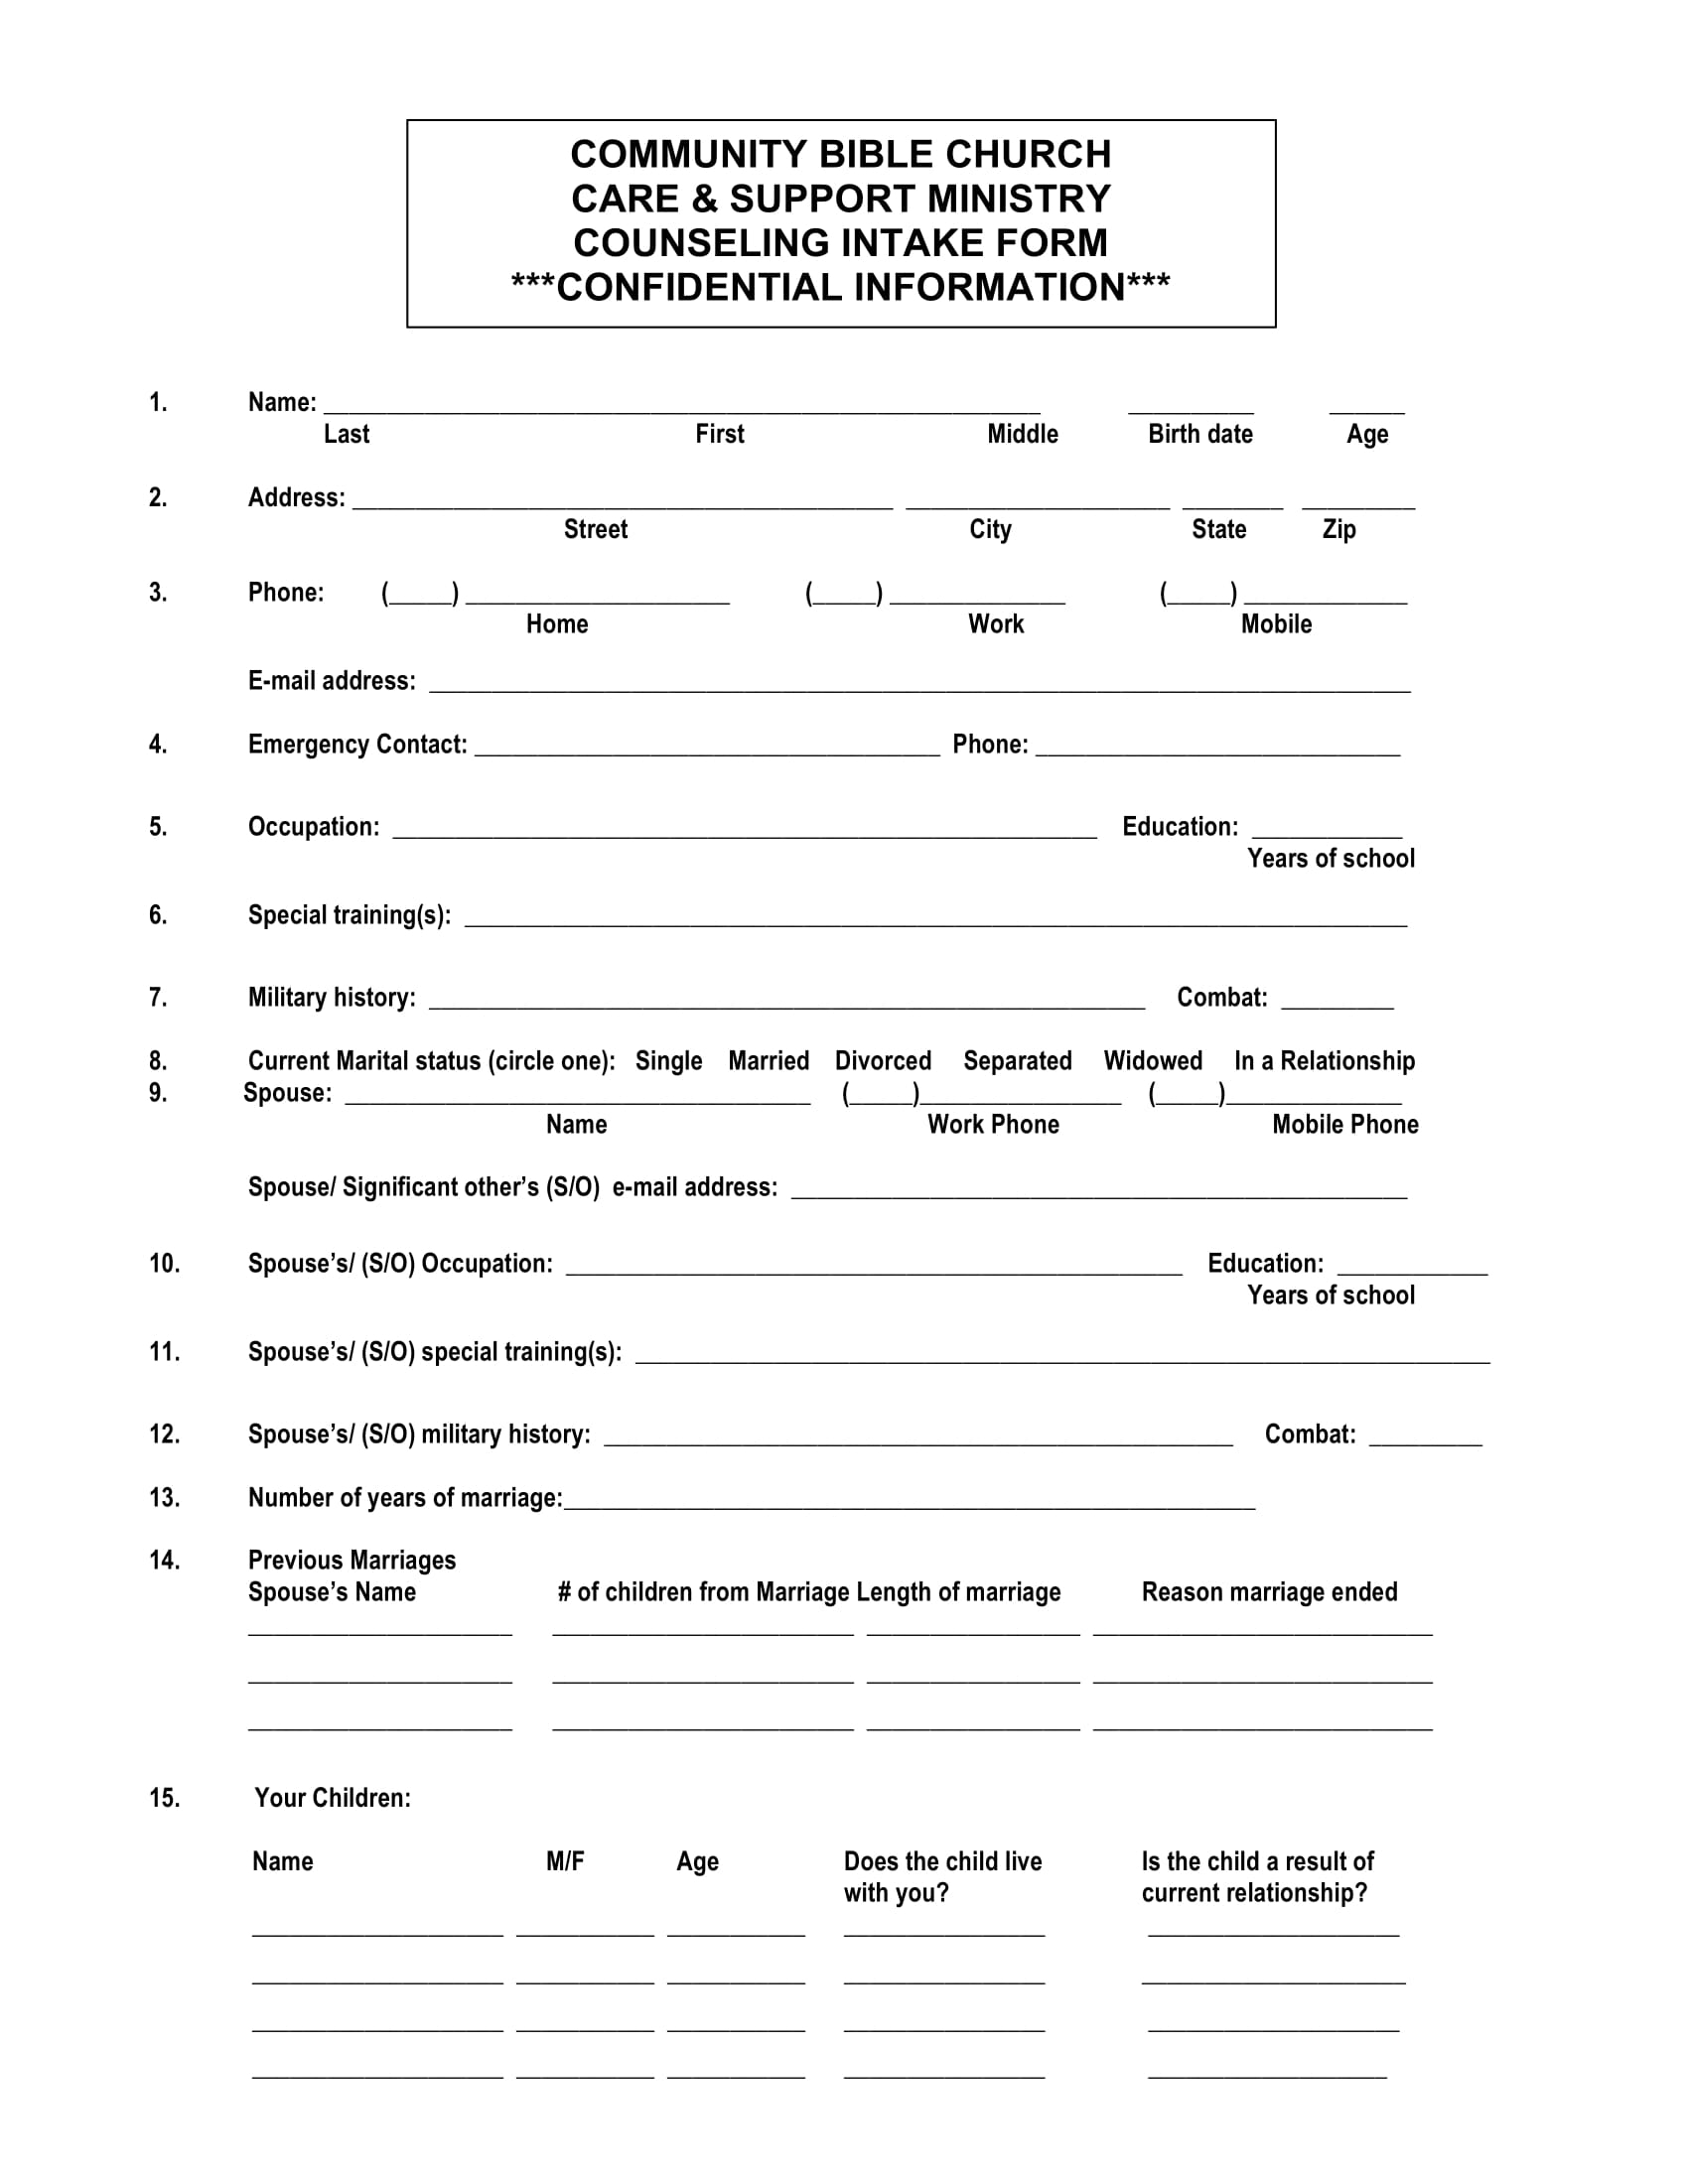 ministry counseling intake form 1